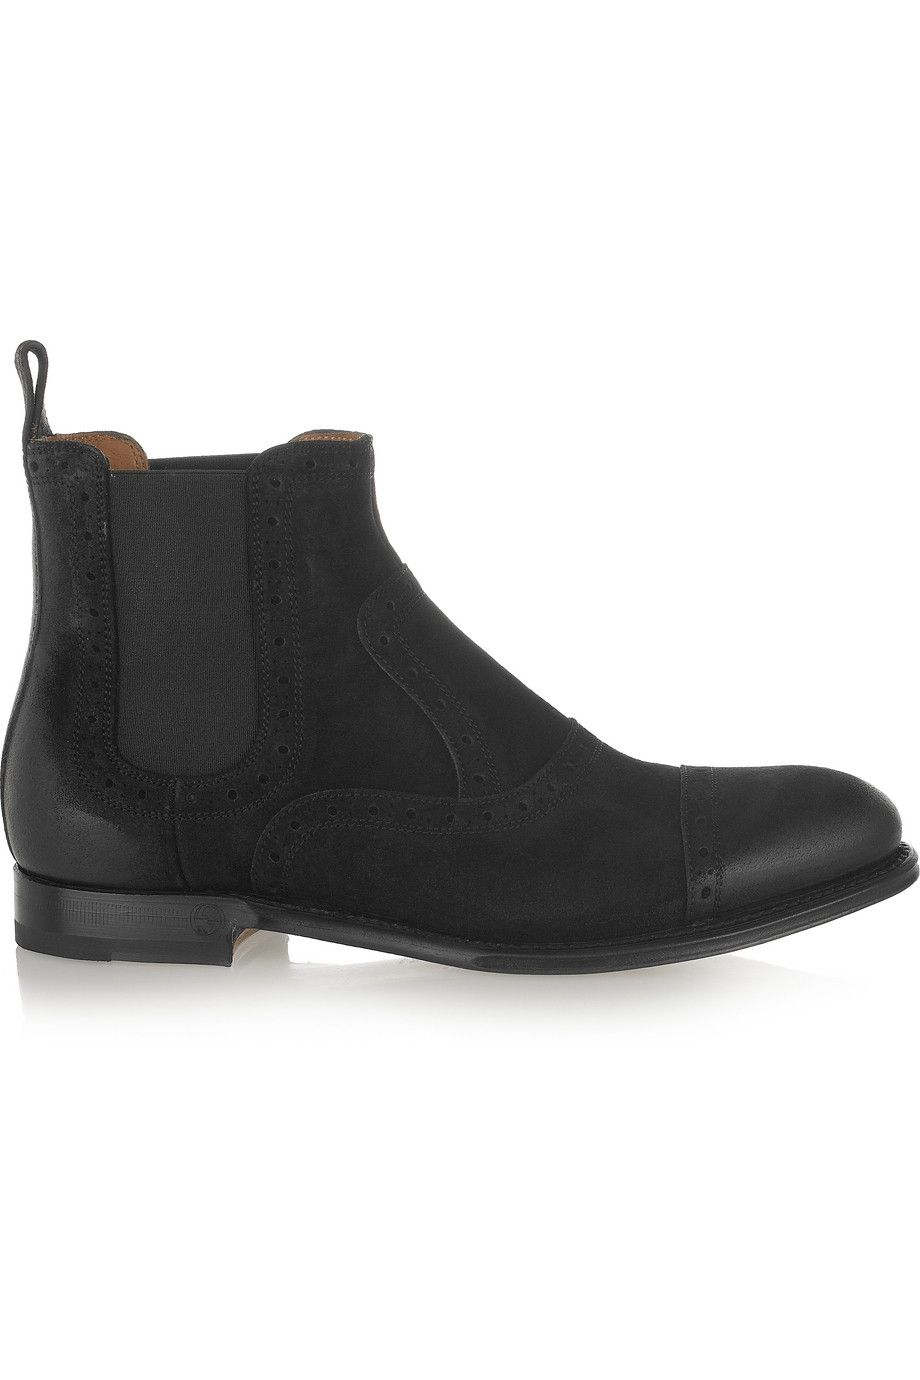 d9z6zHPUzX Black Suede Chelsea Boots 8aFZZkDR